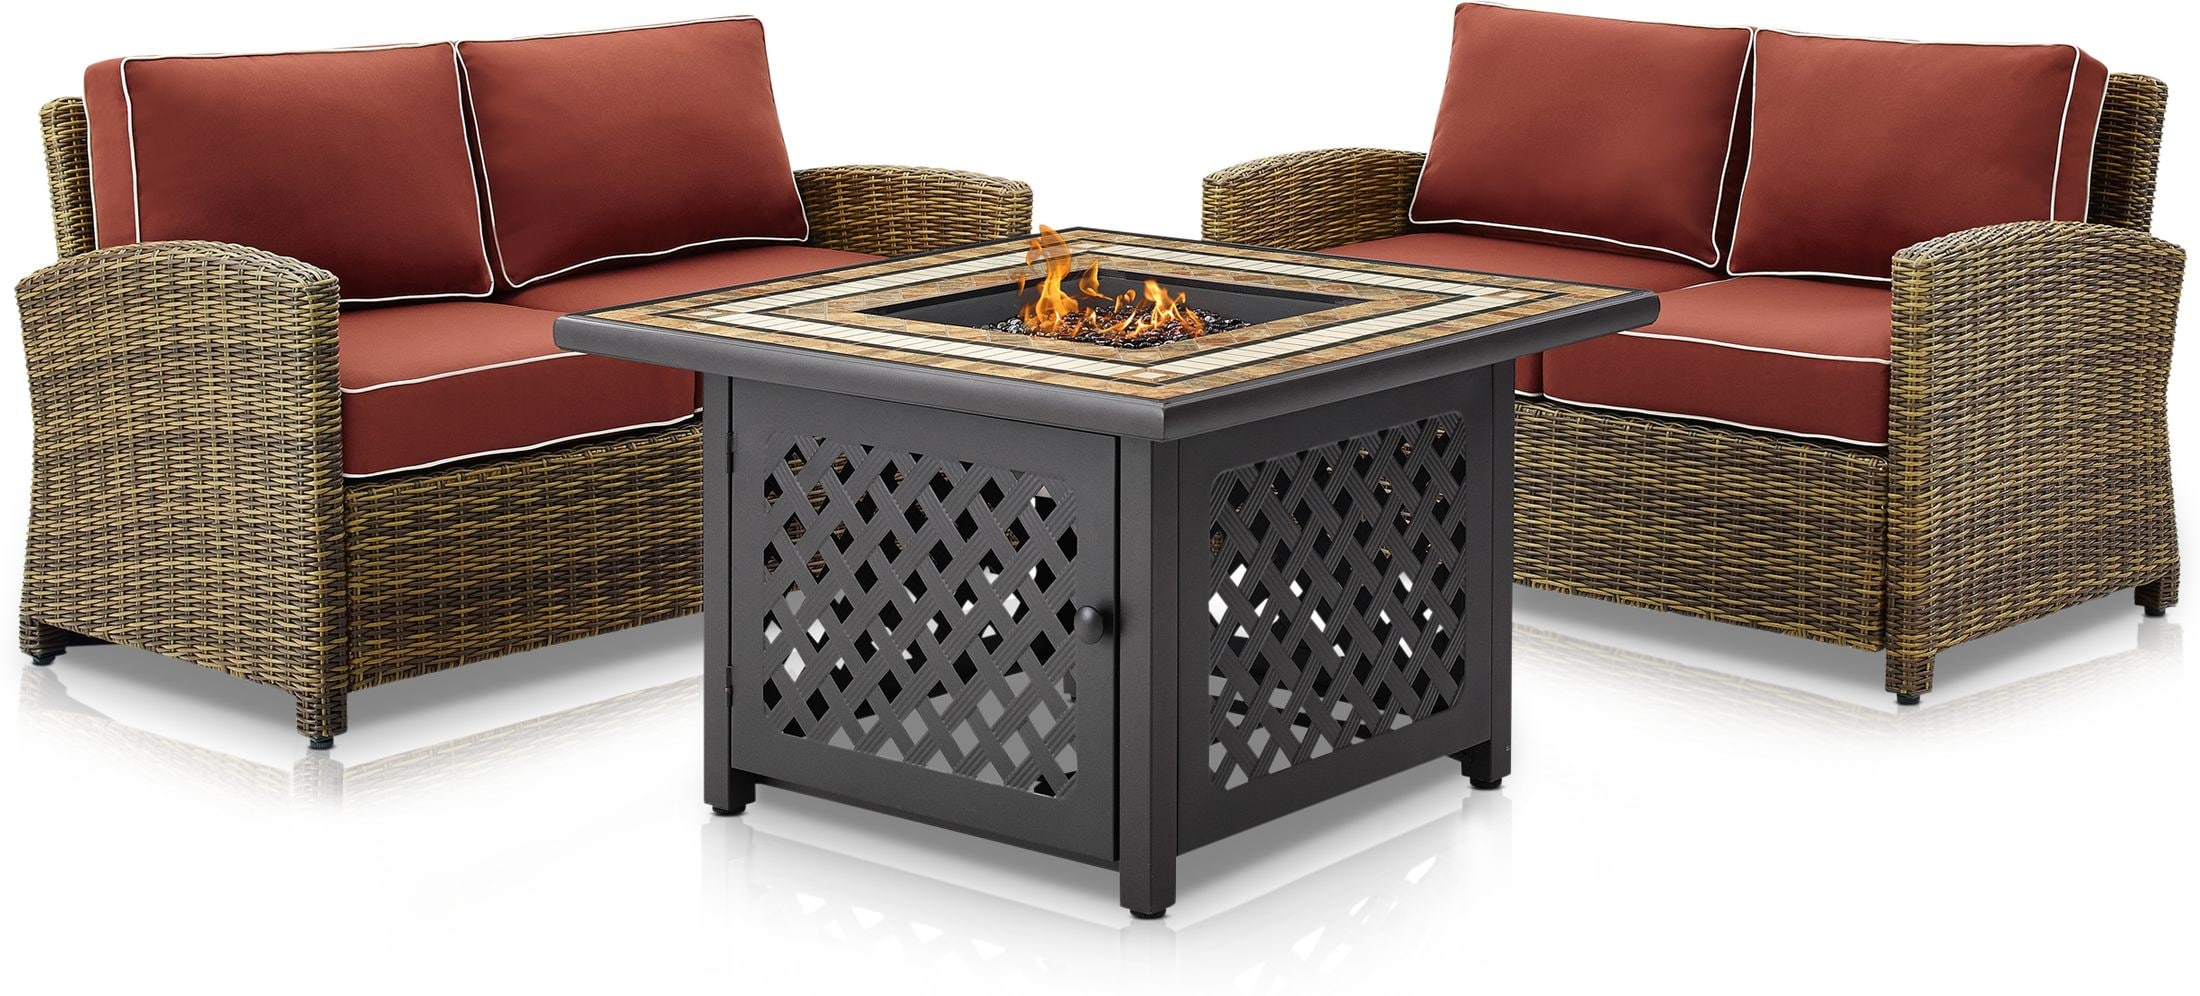 Outdoor Furniture - Destin Set of 2 Outdoor Loveseats and Fire Table